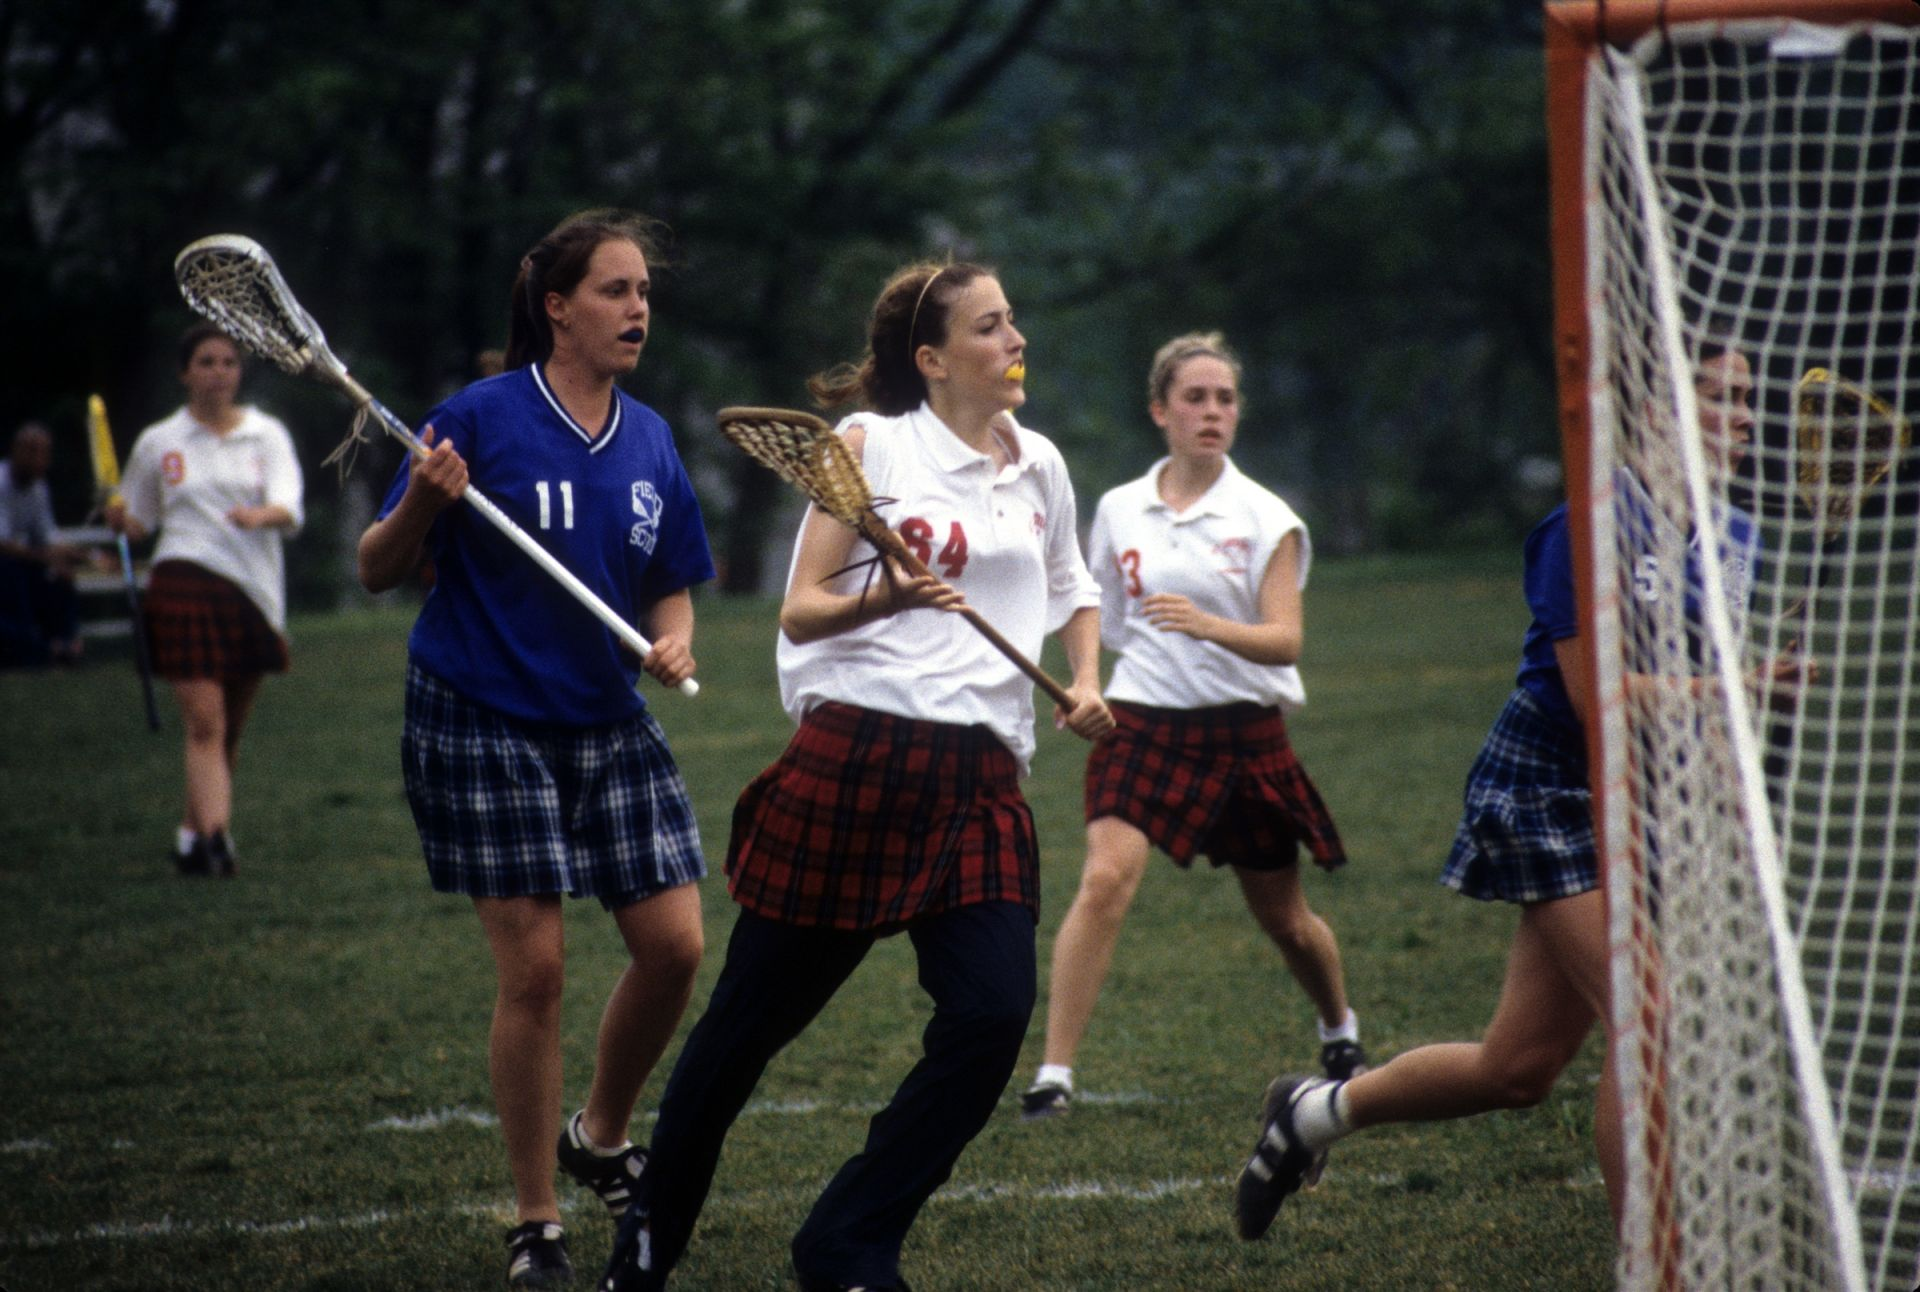 Girls lacrosse during a game - St. Andrew's Episcopal School